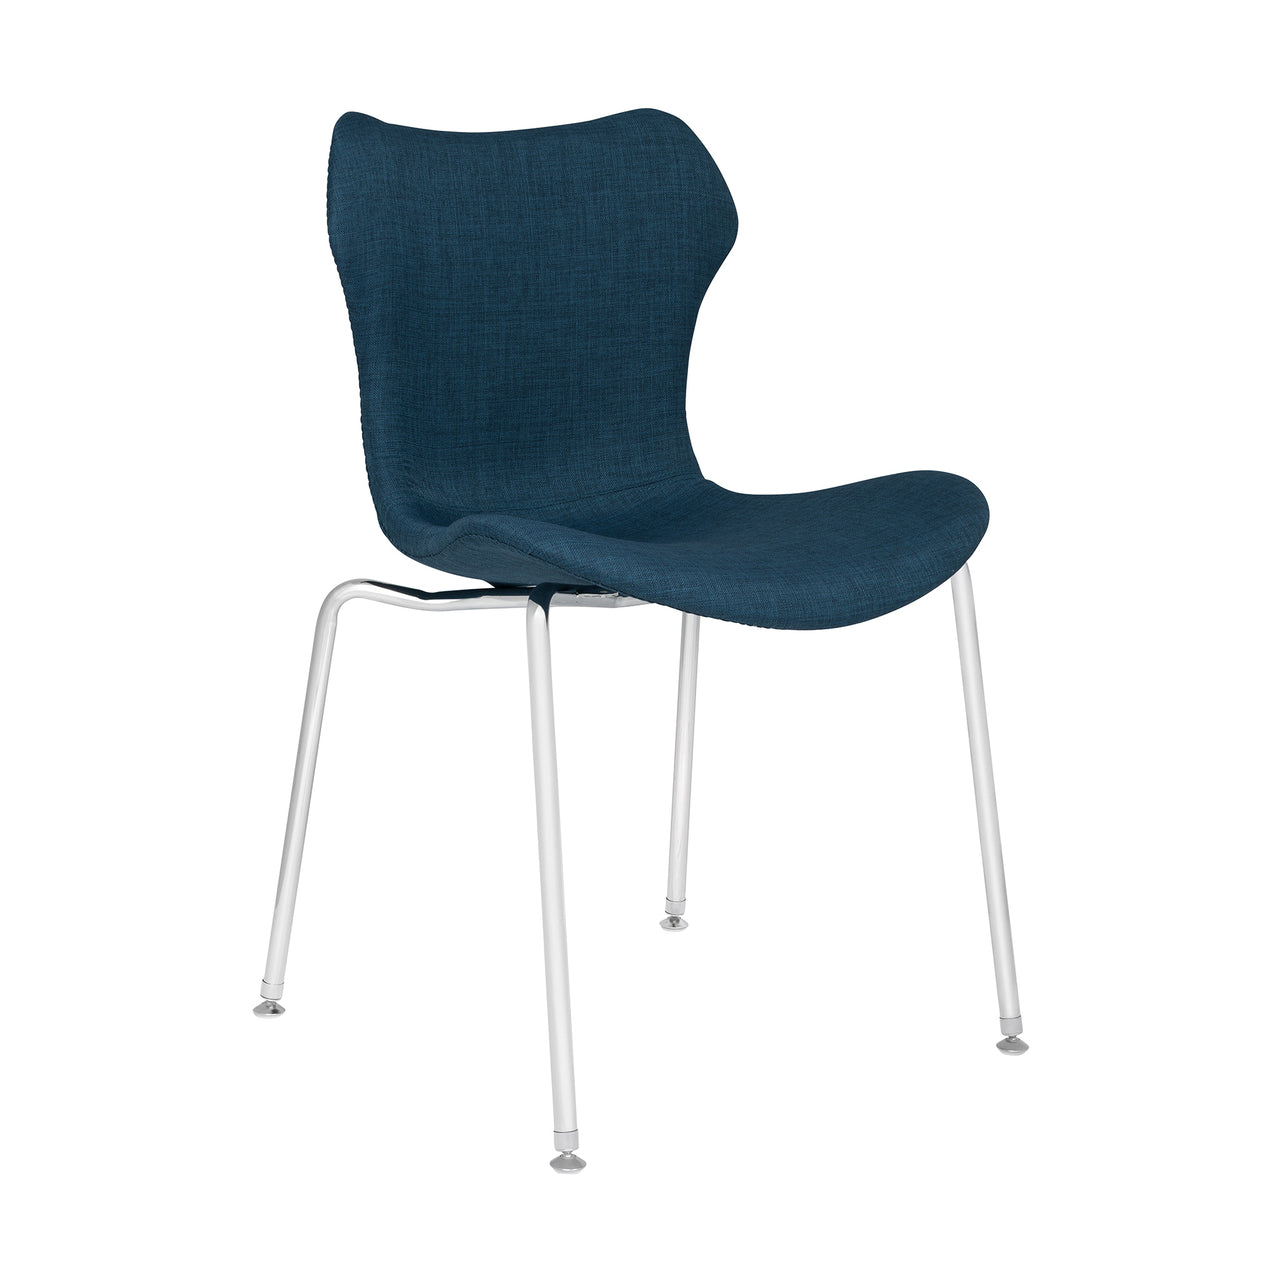 Gramercy Side Chair - Set of 2 (Blue)